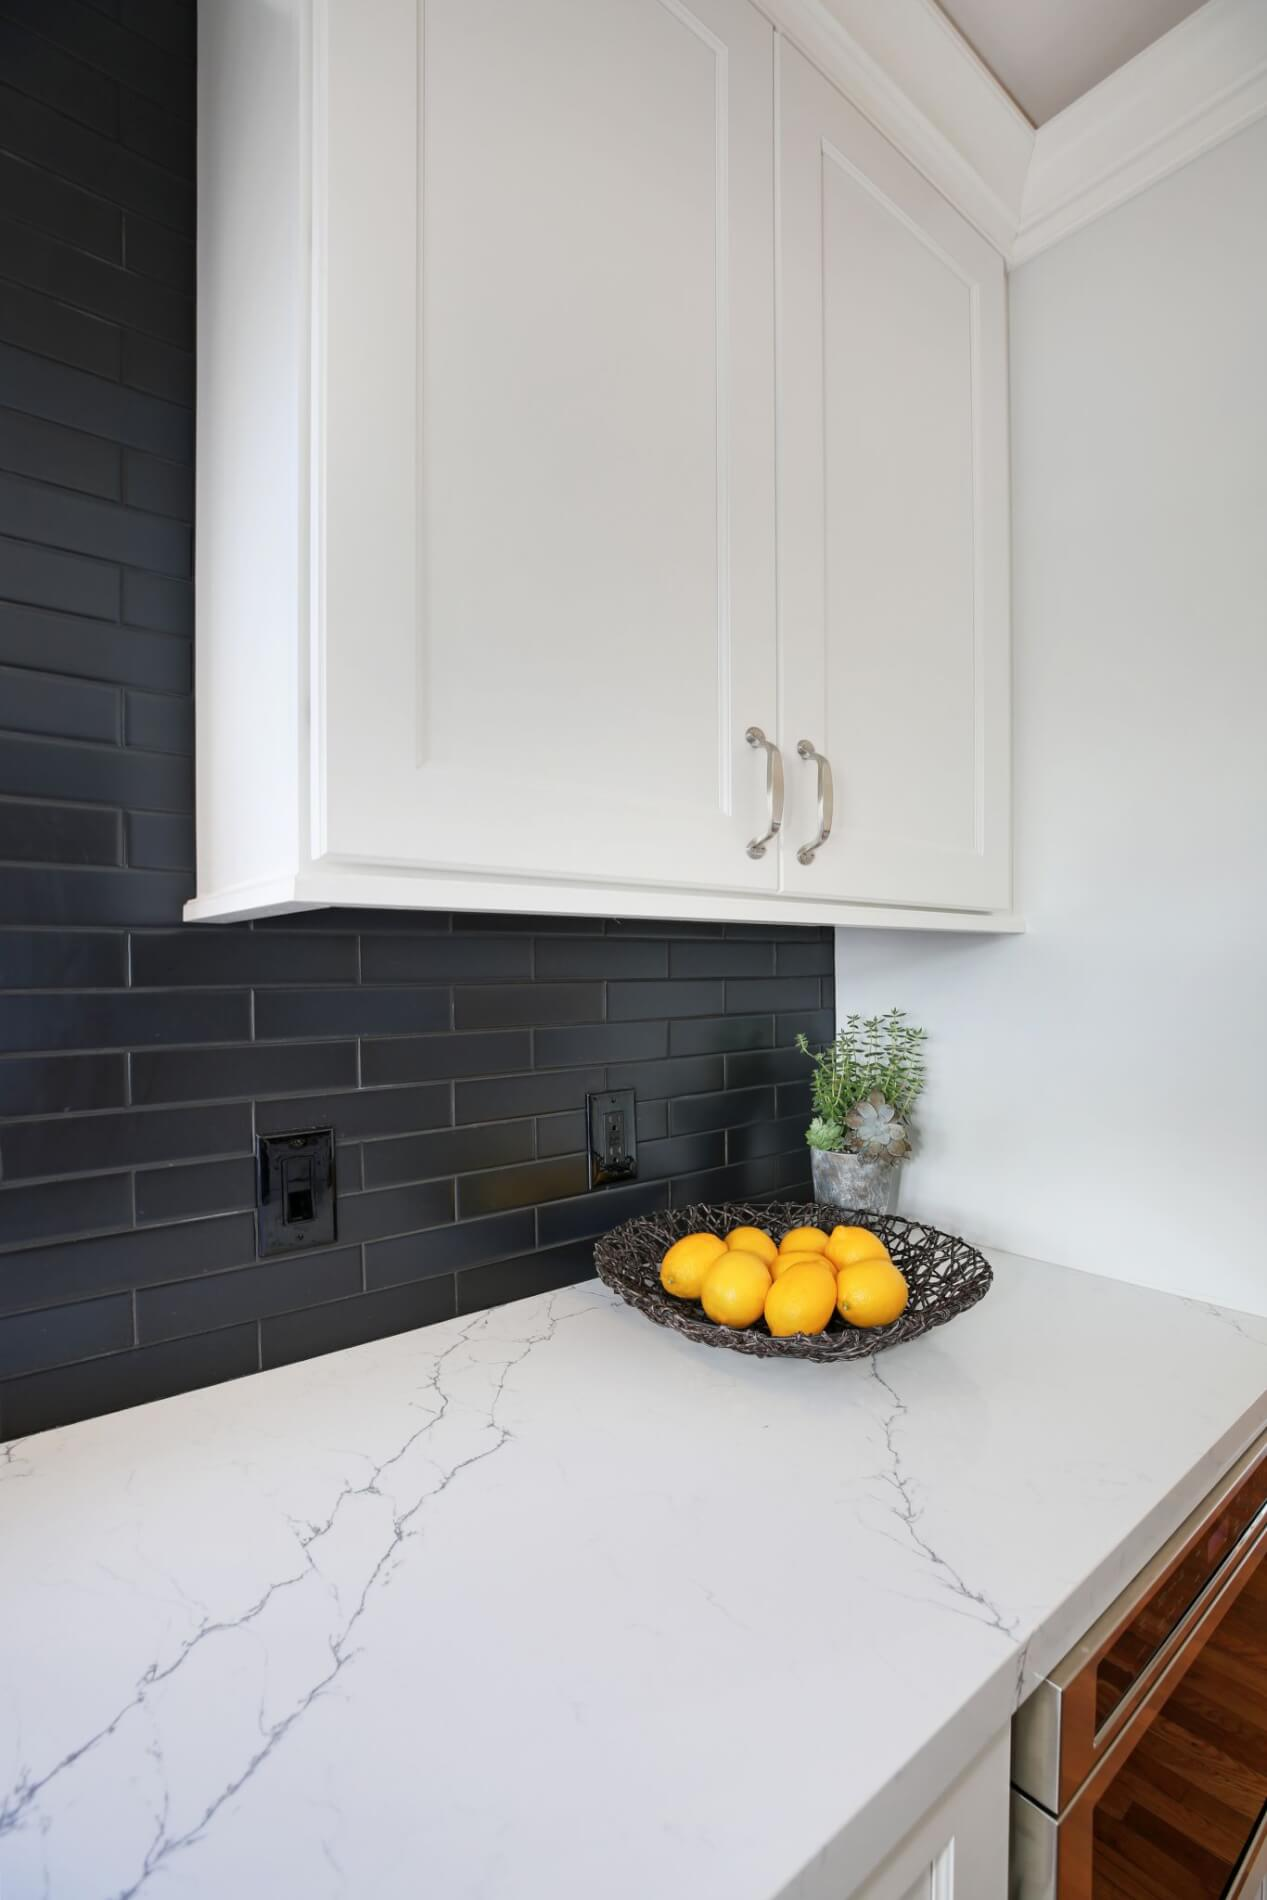 matte black tile backsplash with white kitchen cabinets and countertop